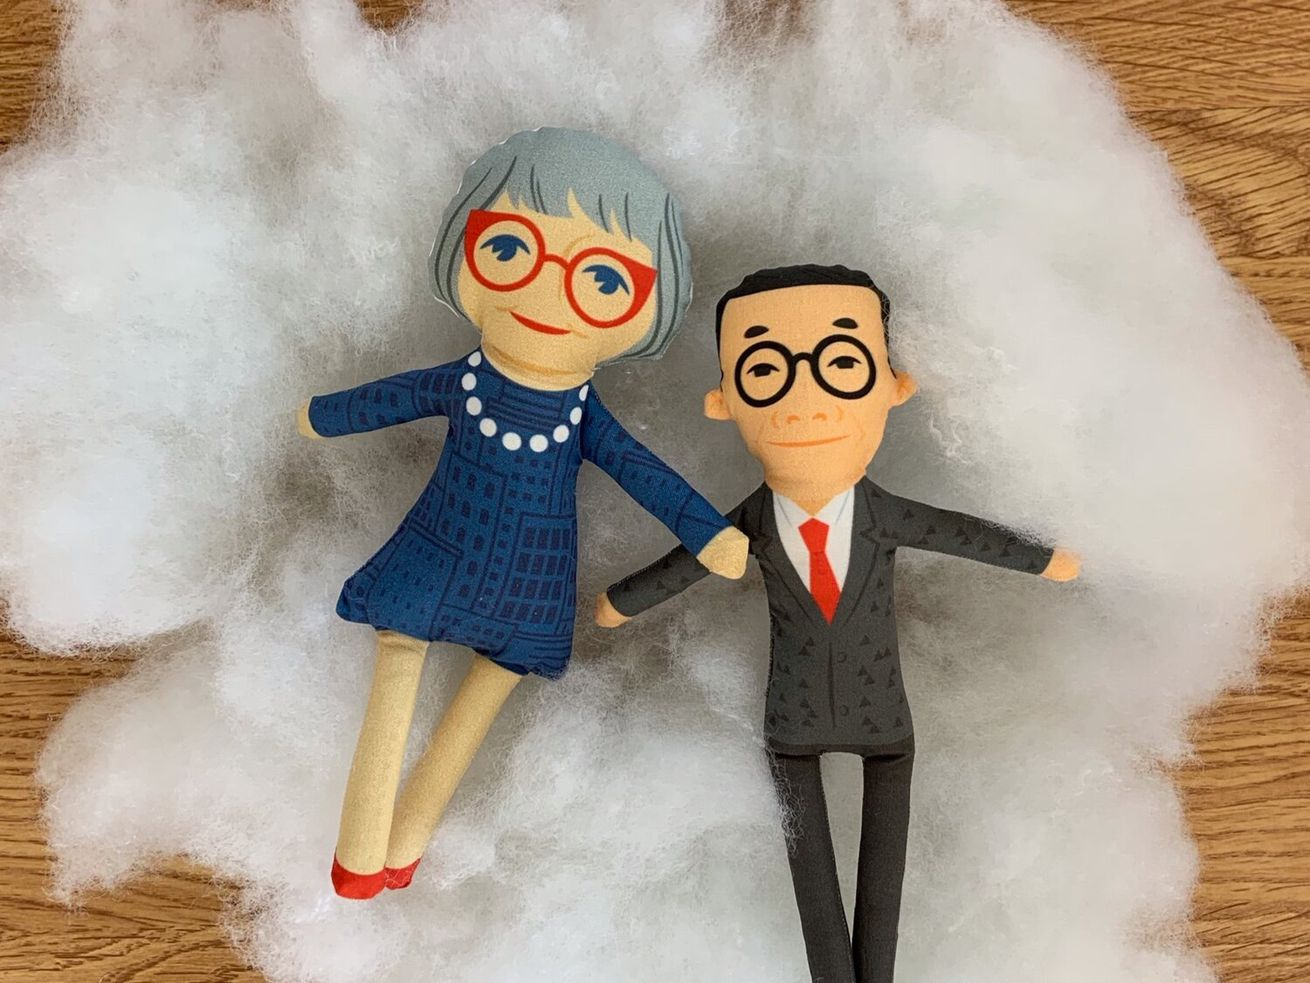 Tiny Jane Jacobs creator introduces a tiny I.M. Pei doll